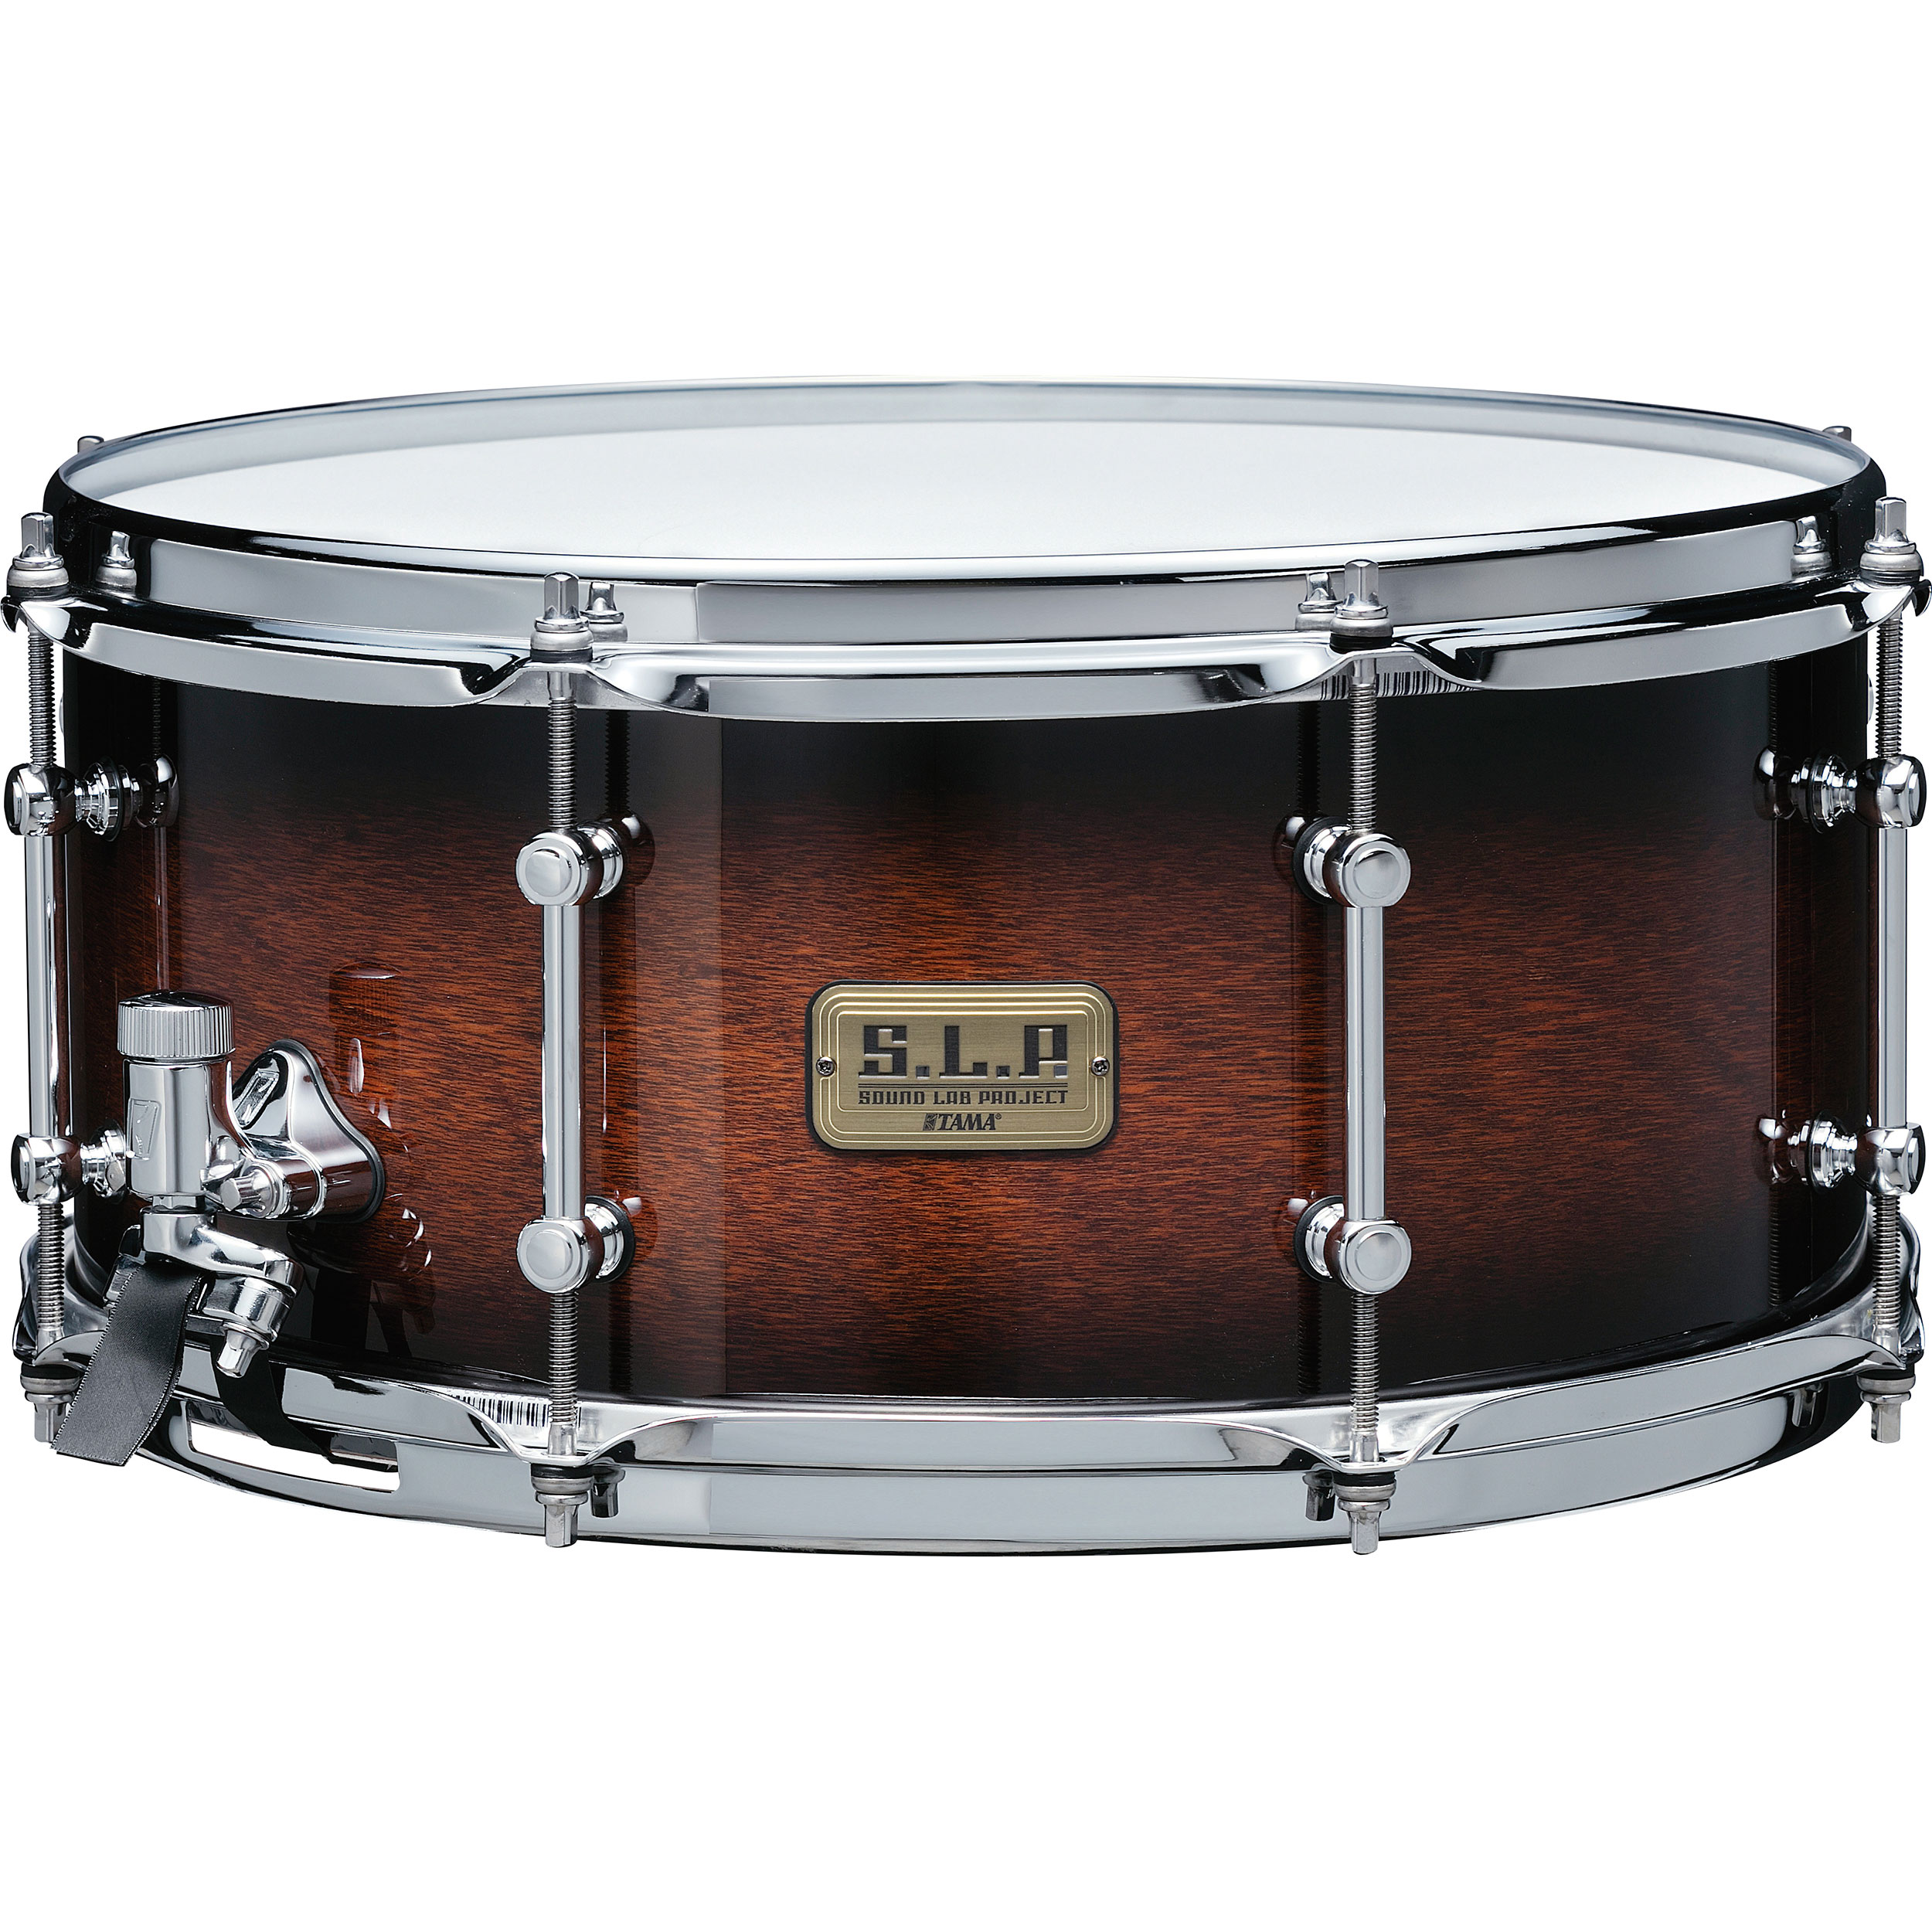 "Tama 6.5"" x 14"" S.L.P. Dynamic Kapur Snare Drum in Black Kapur Burst"